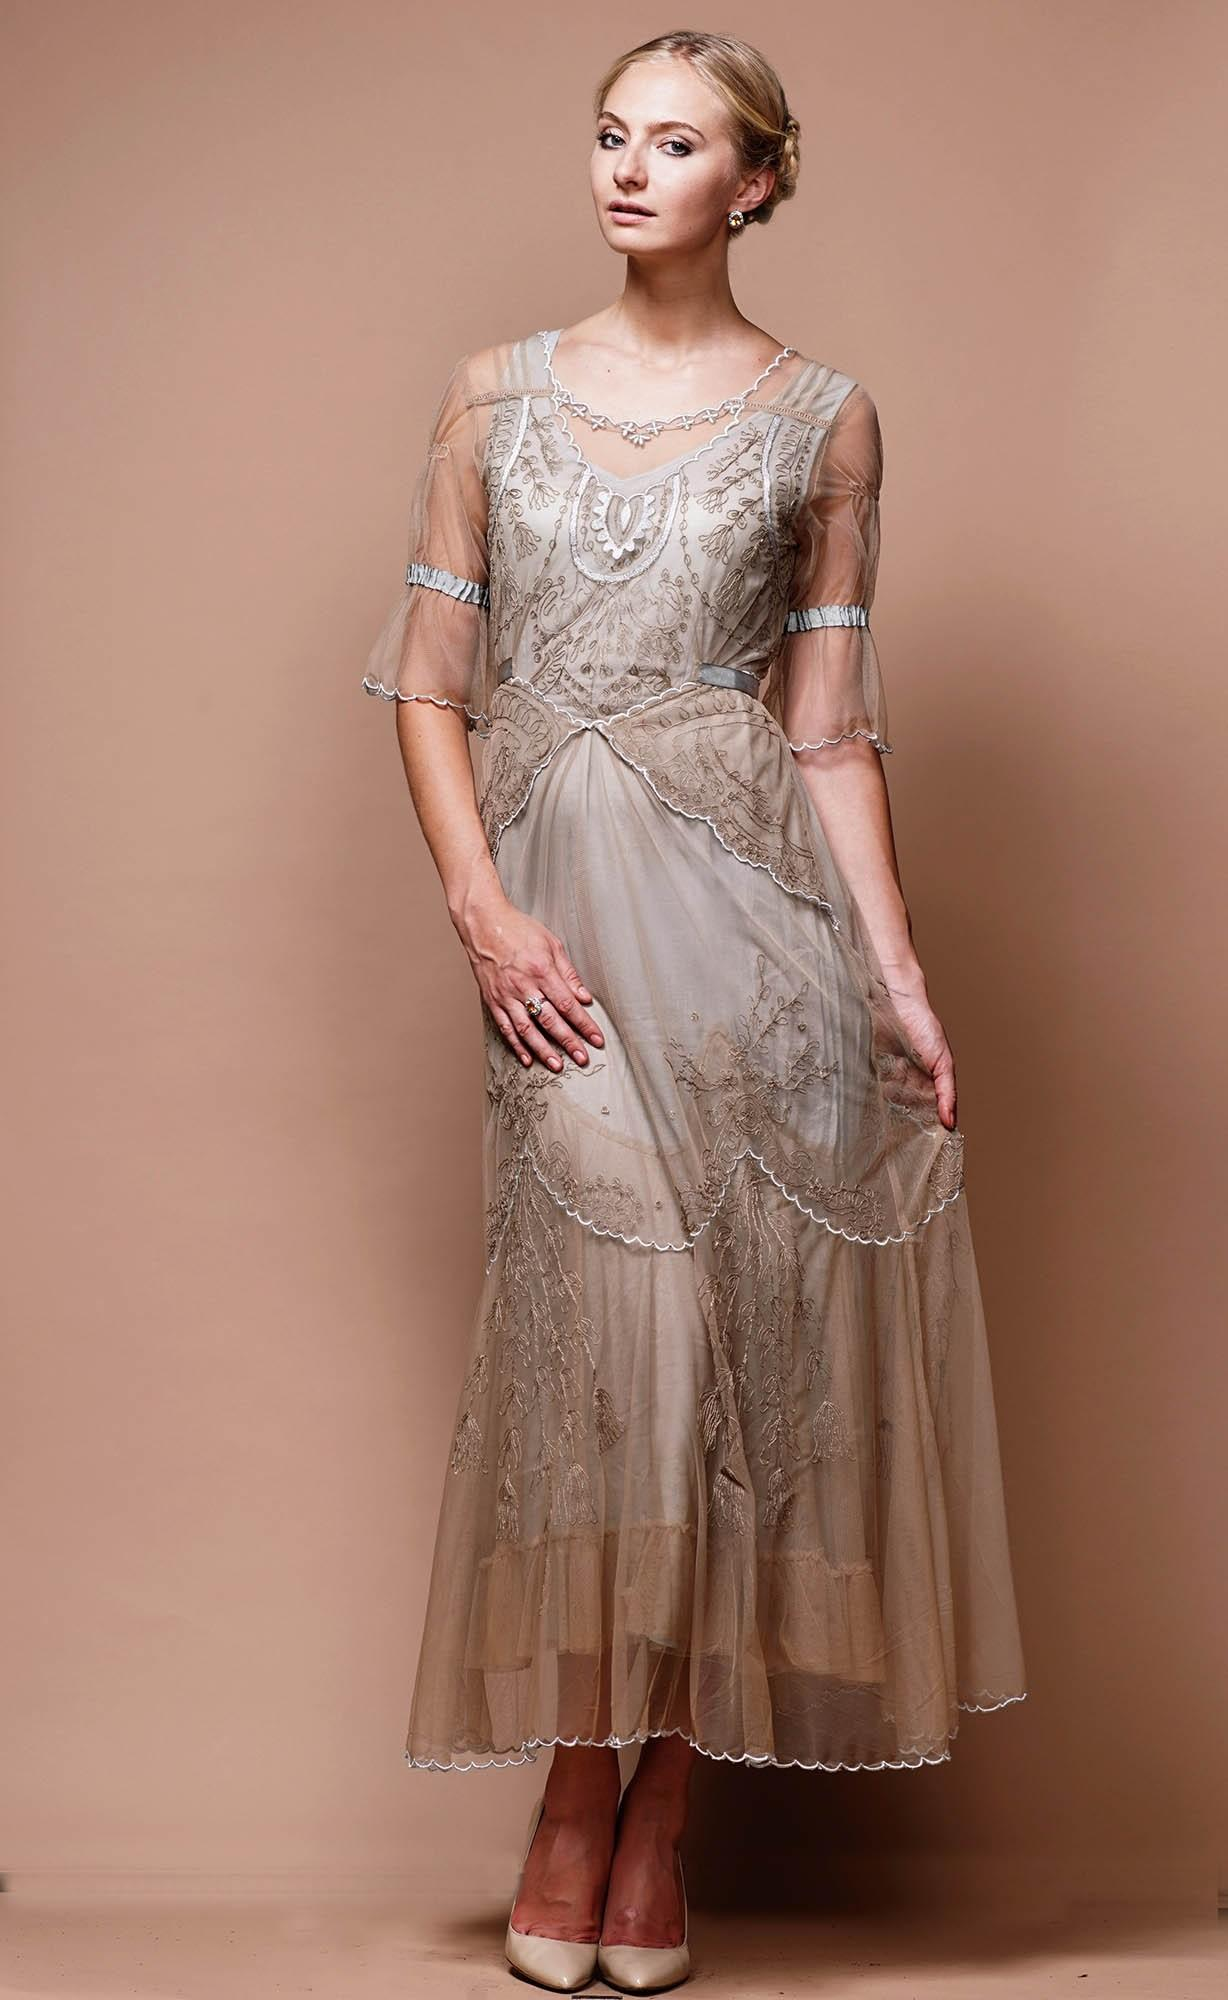 Edwardian Vintage Wedding Dress in Sand-Silver by Nataya